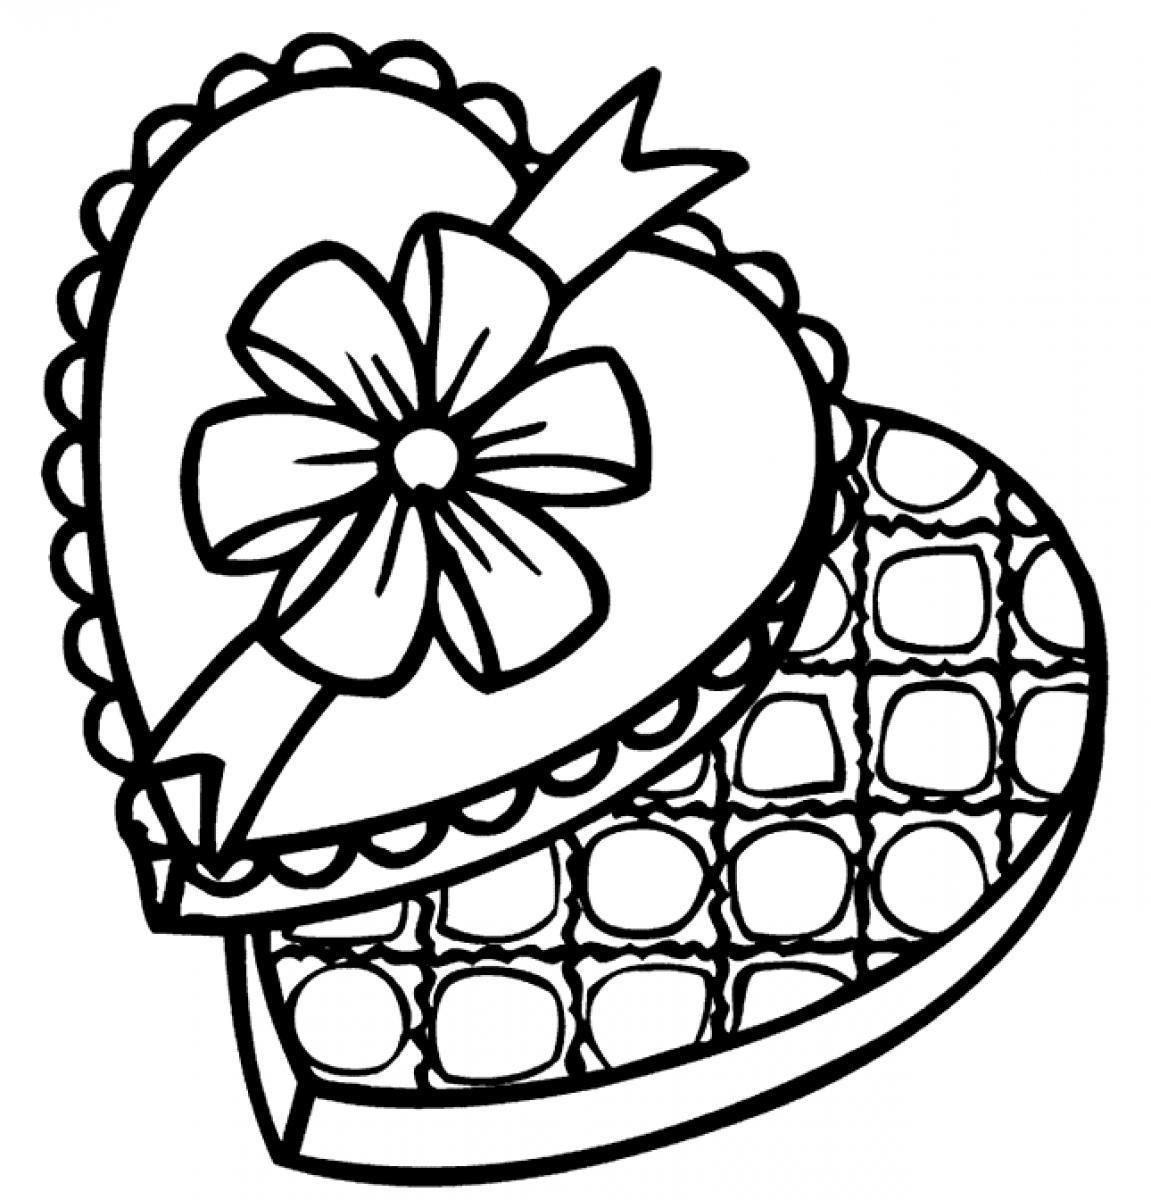 Chocolate Coloring Pages  Chocolate Coloring Page Coloring Home